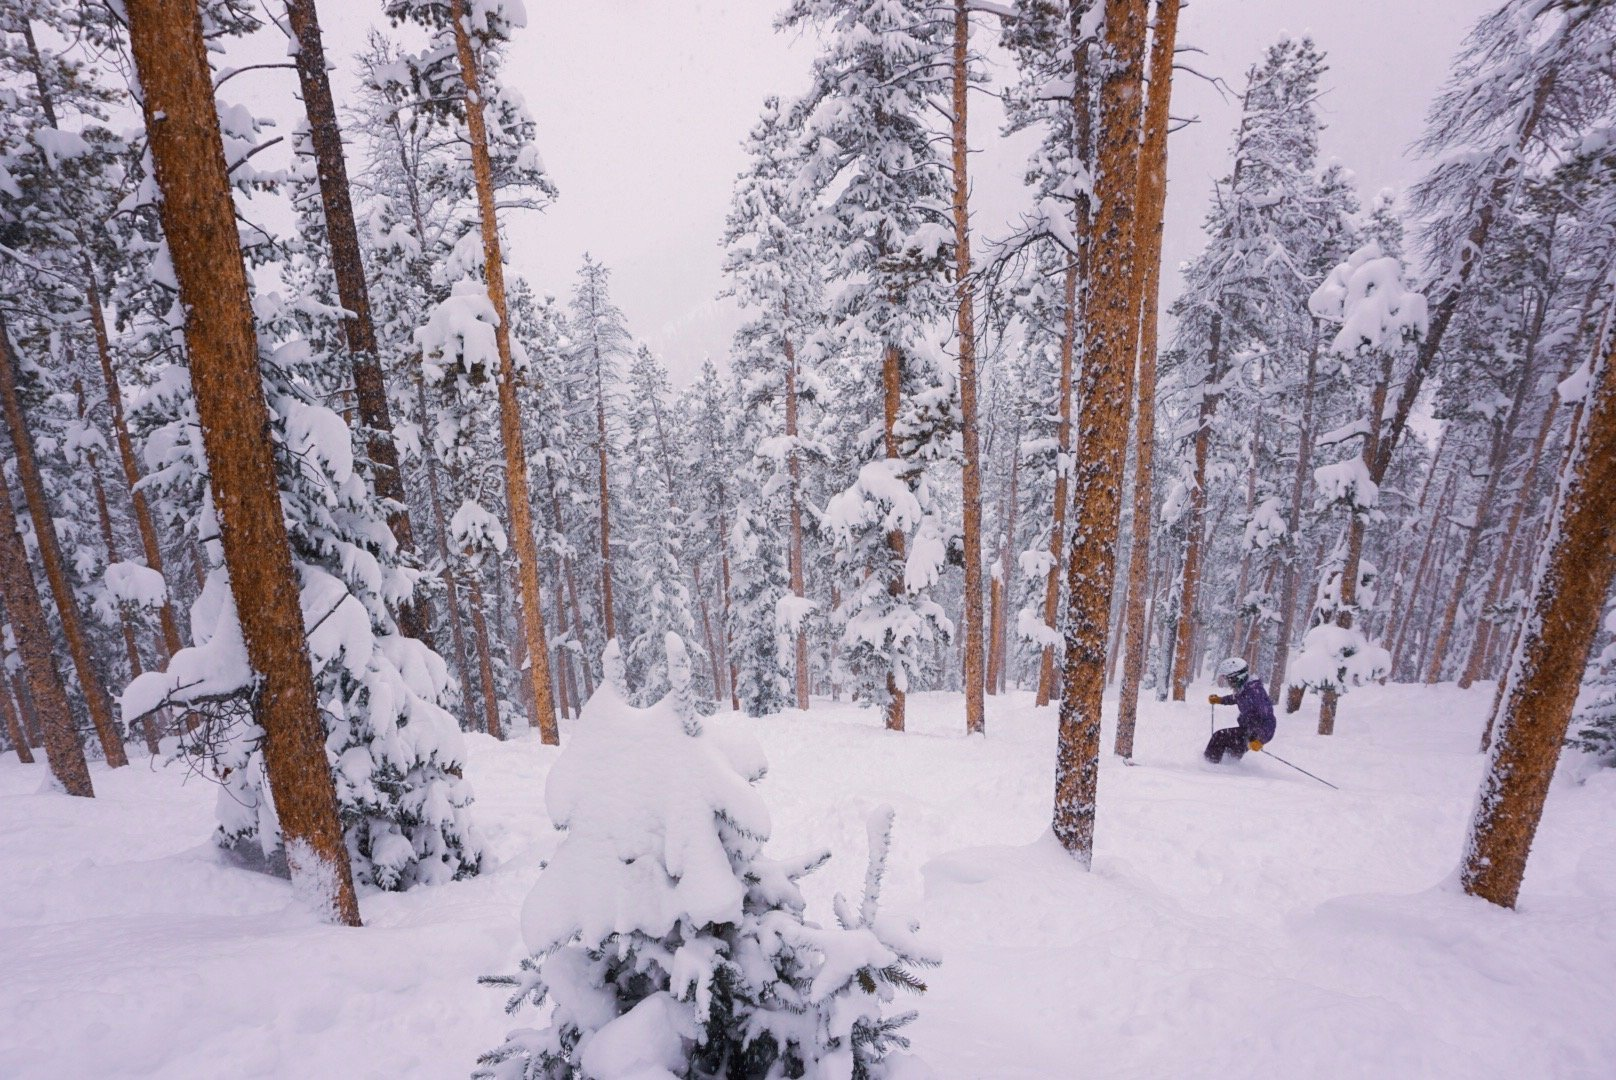 a skier in snowy glades at Keystone